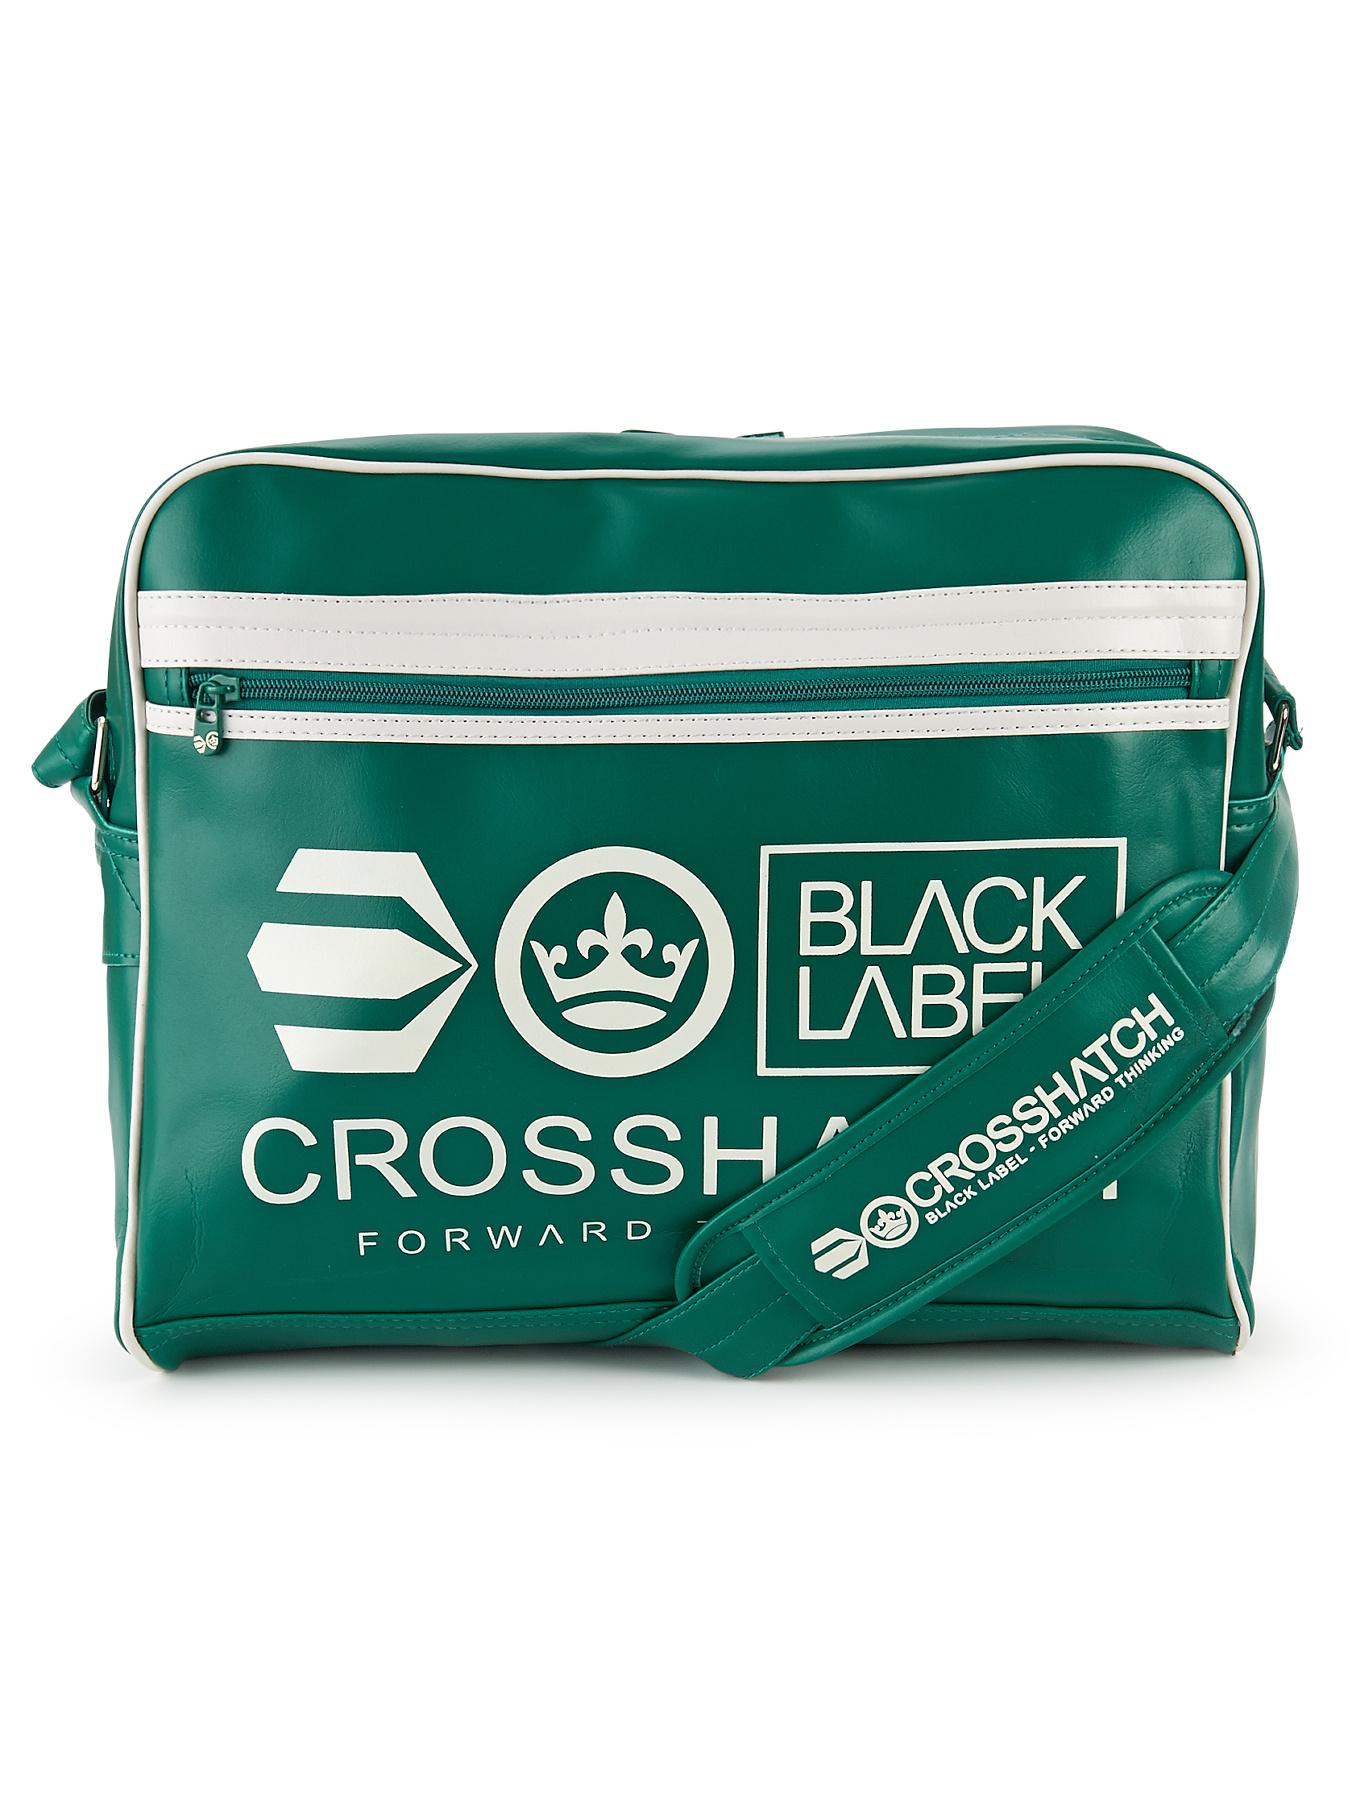 Crosshatch Mens Messenger Bag - Green, Green